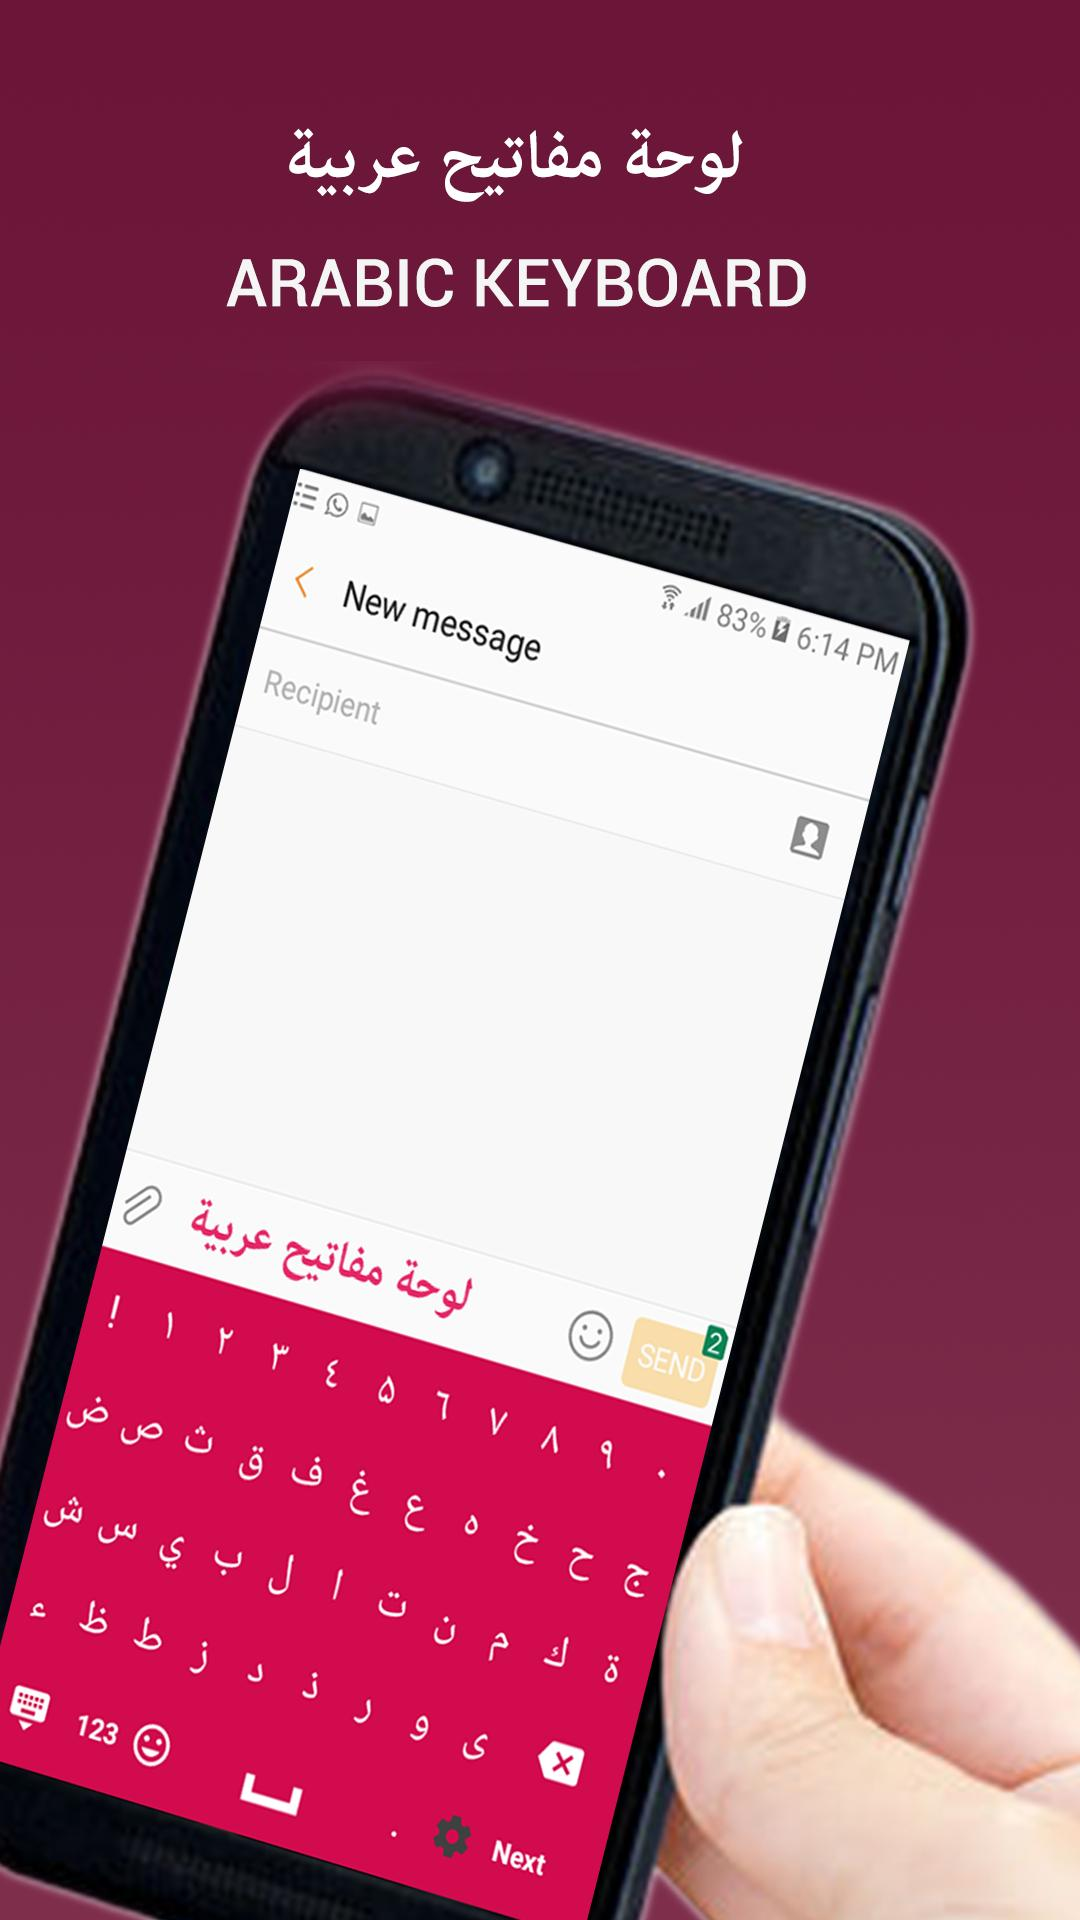 a4d64bd8352 Easy Arabic Typing - English to Arabic Keyboard for Android - APK ...